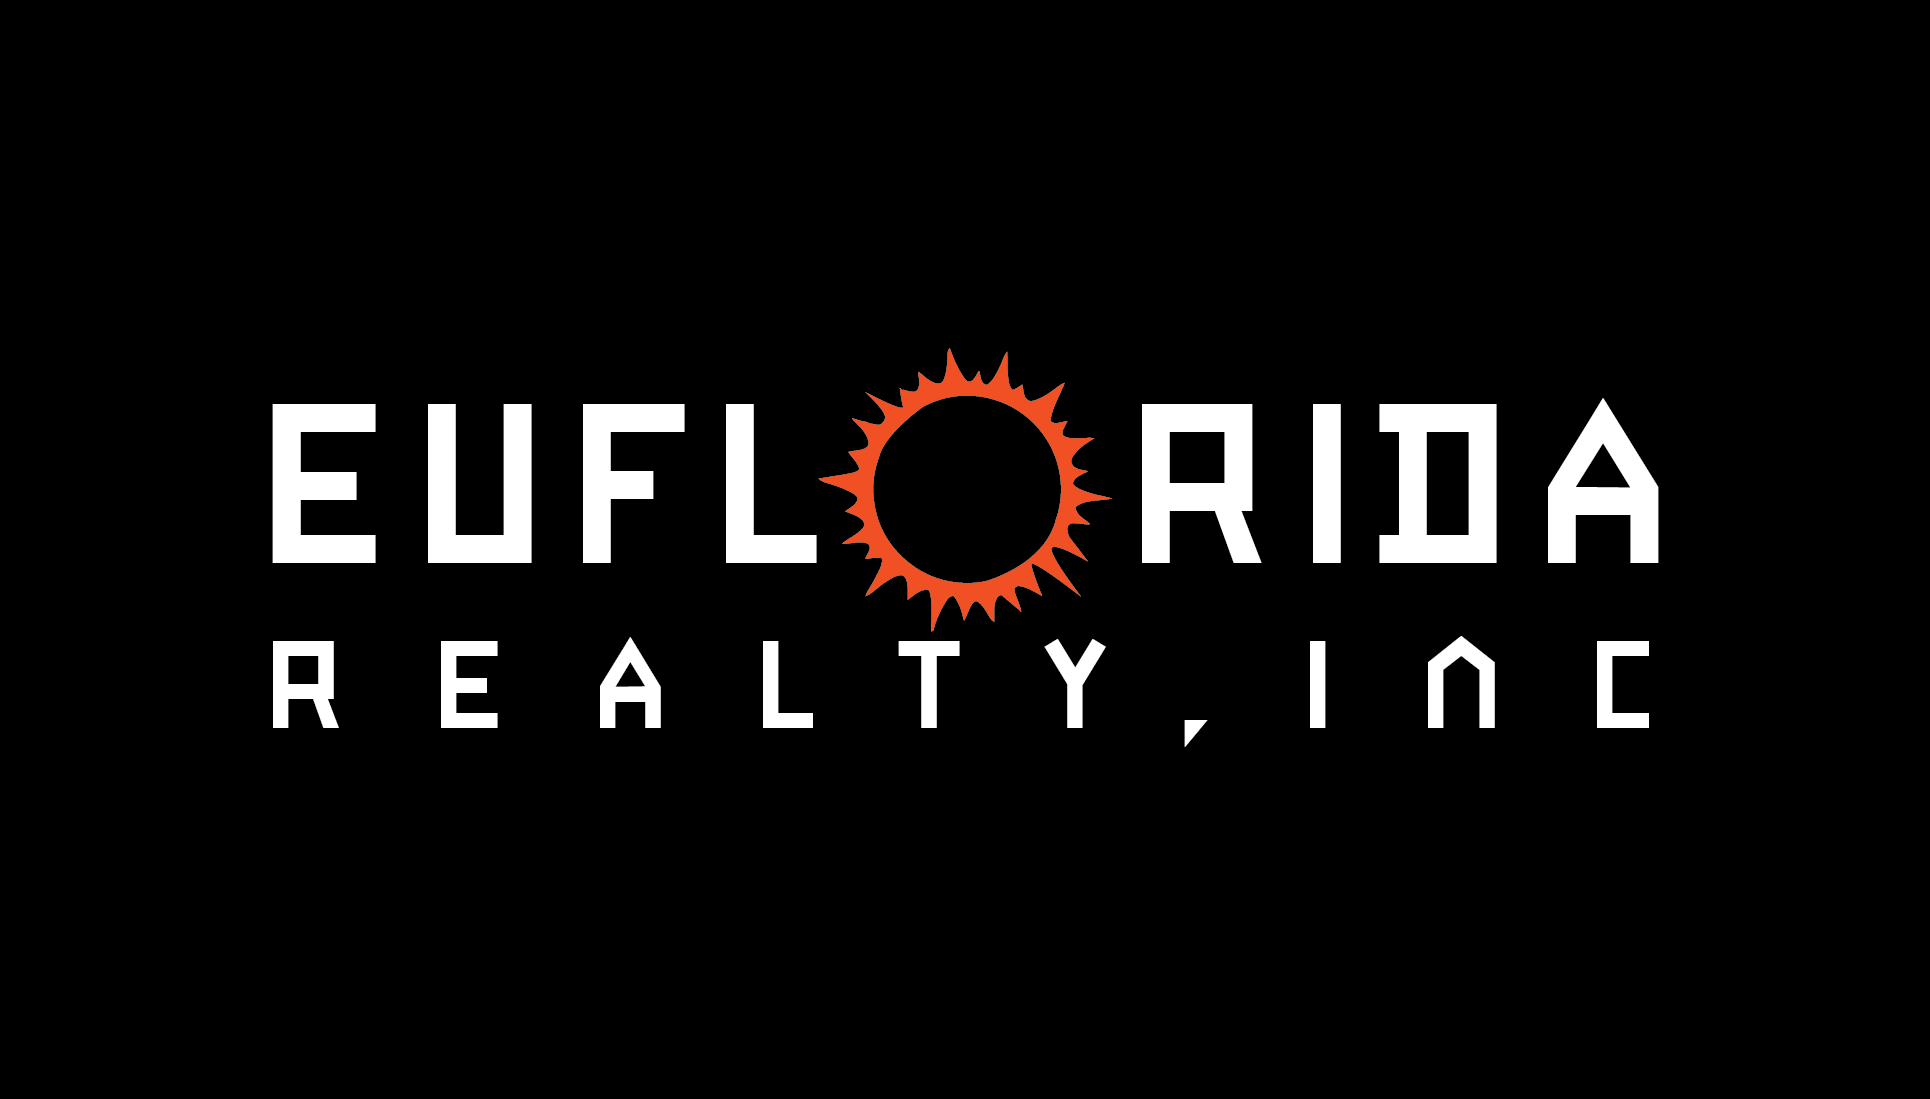 EUFlorida Realty, Real Estate Agent